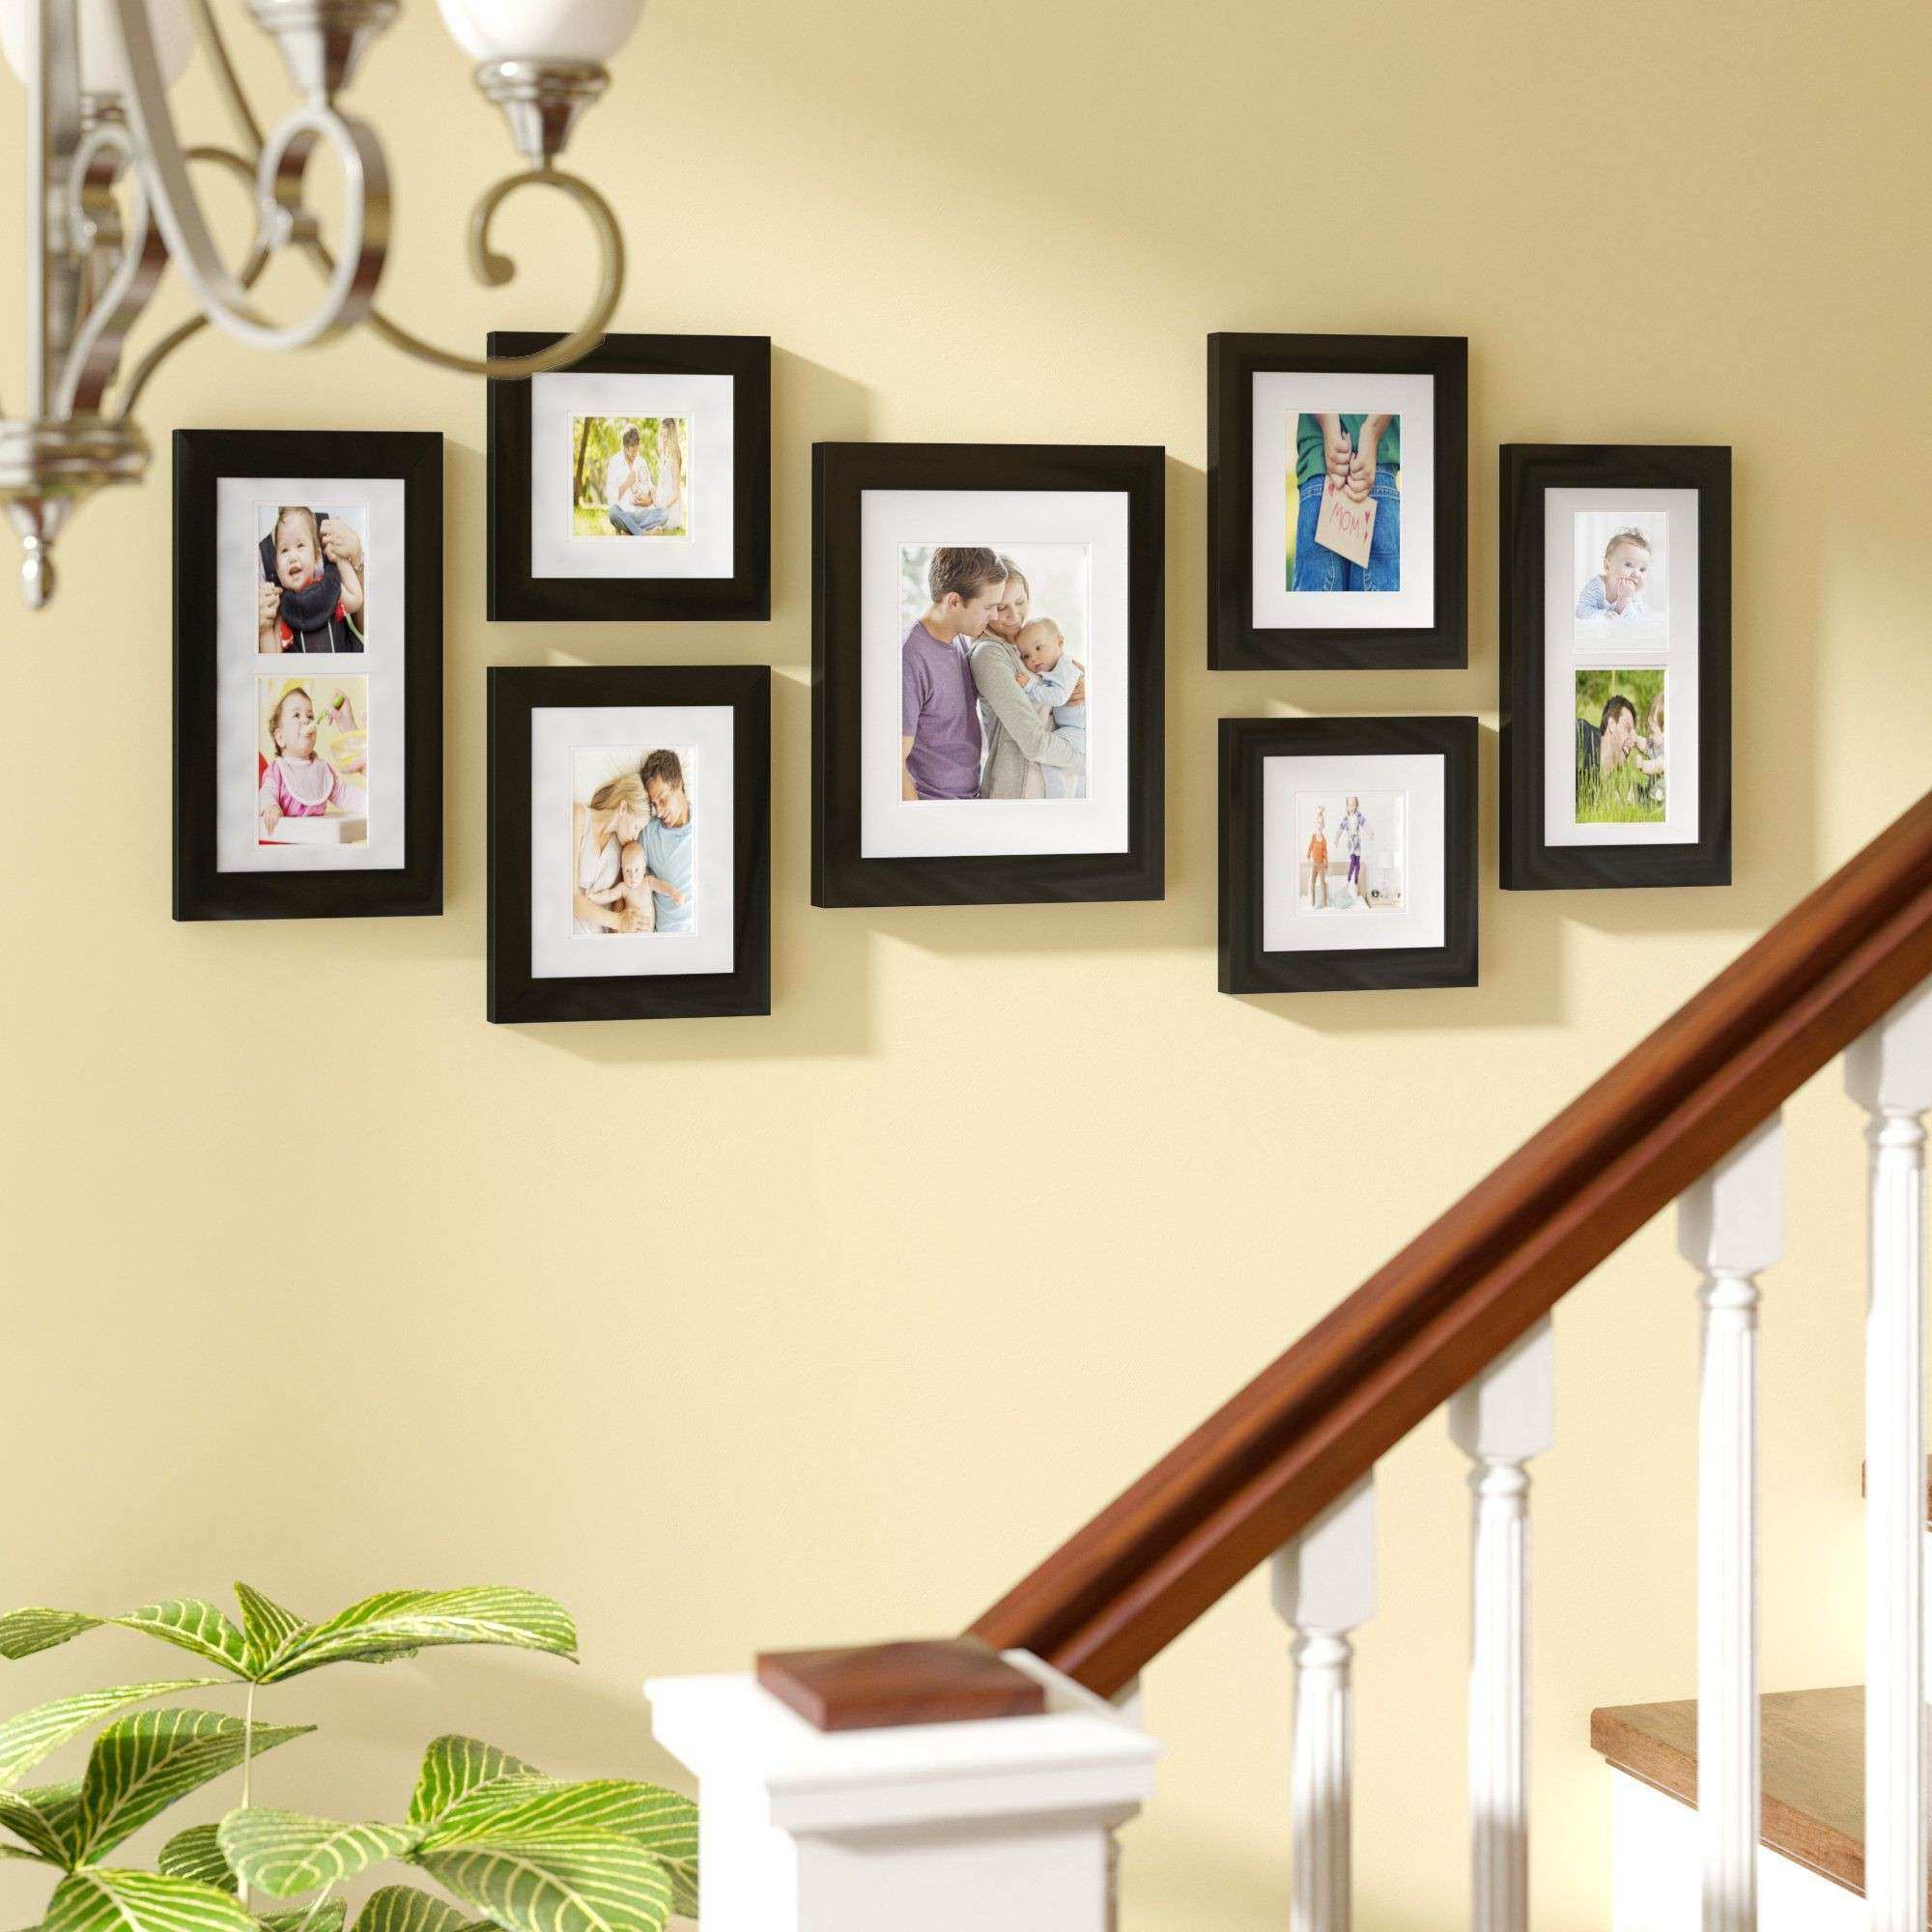 Fine Wall Frame Gallery Ideas Sketch - Wall Art Collections ...